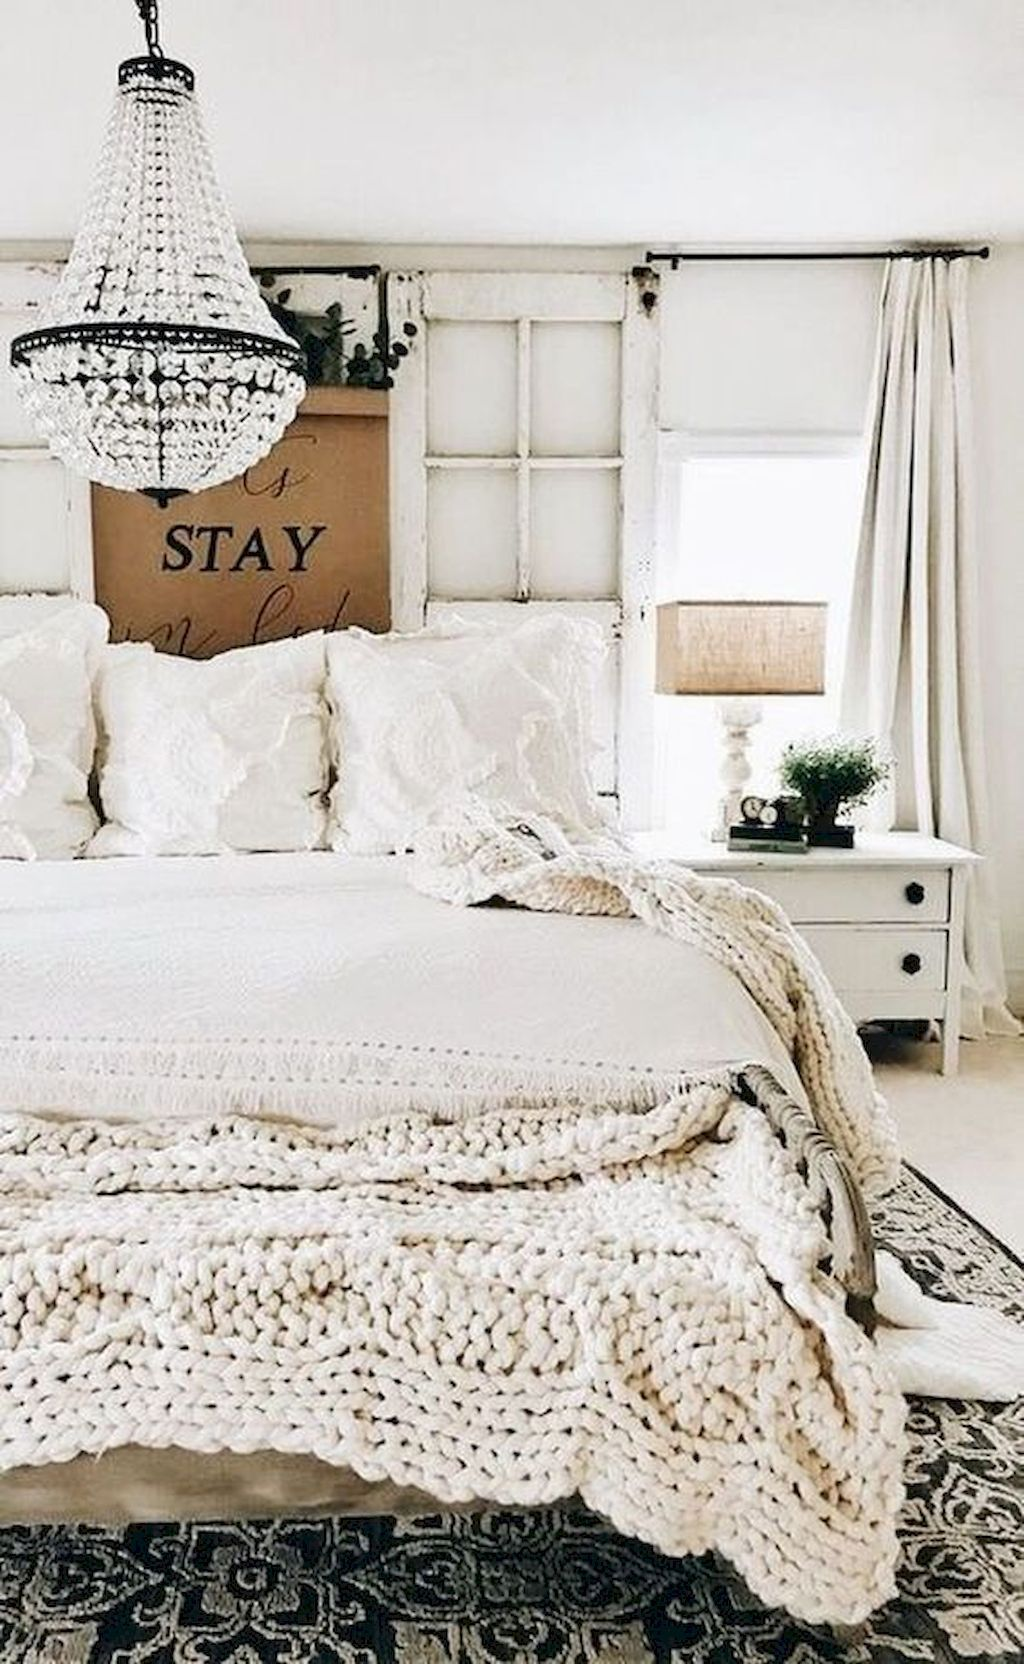 Brighten Your Space With These Impressive Bedroom Lighting Ideas Momo Zain Country Bedroom Decor French Country Decorating Bedroom Home Decor Bedroom